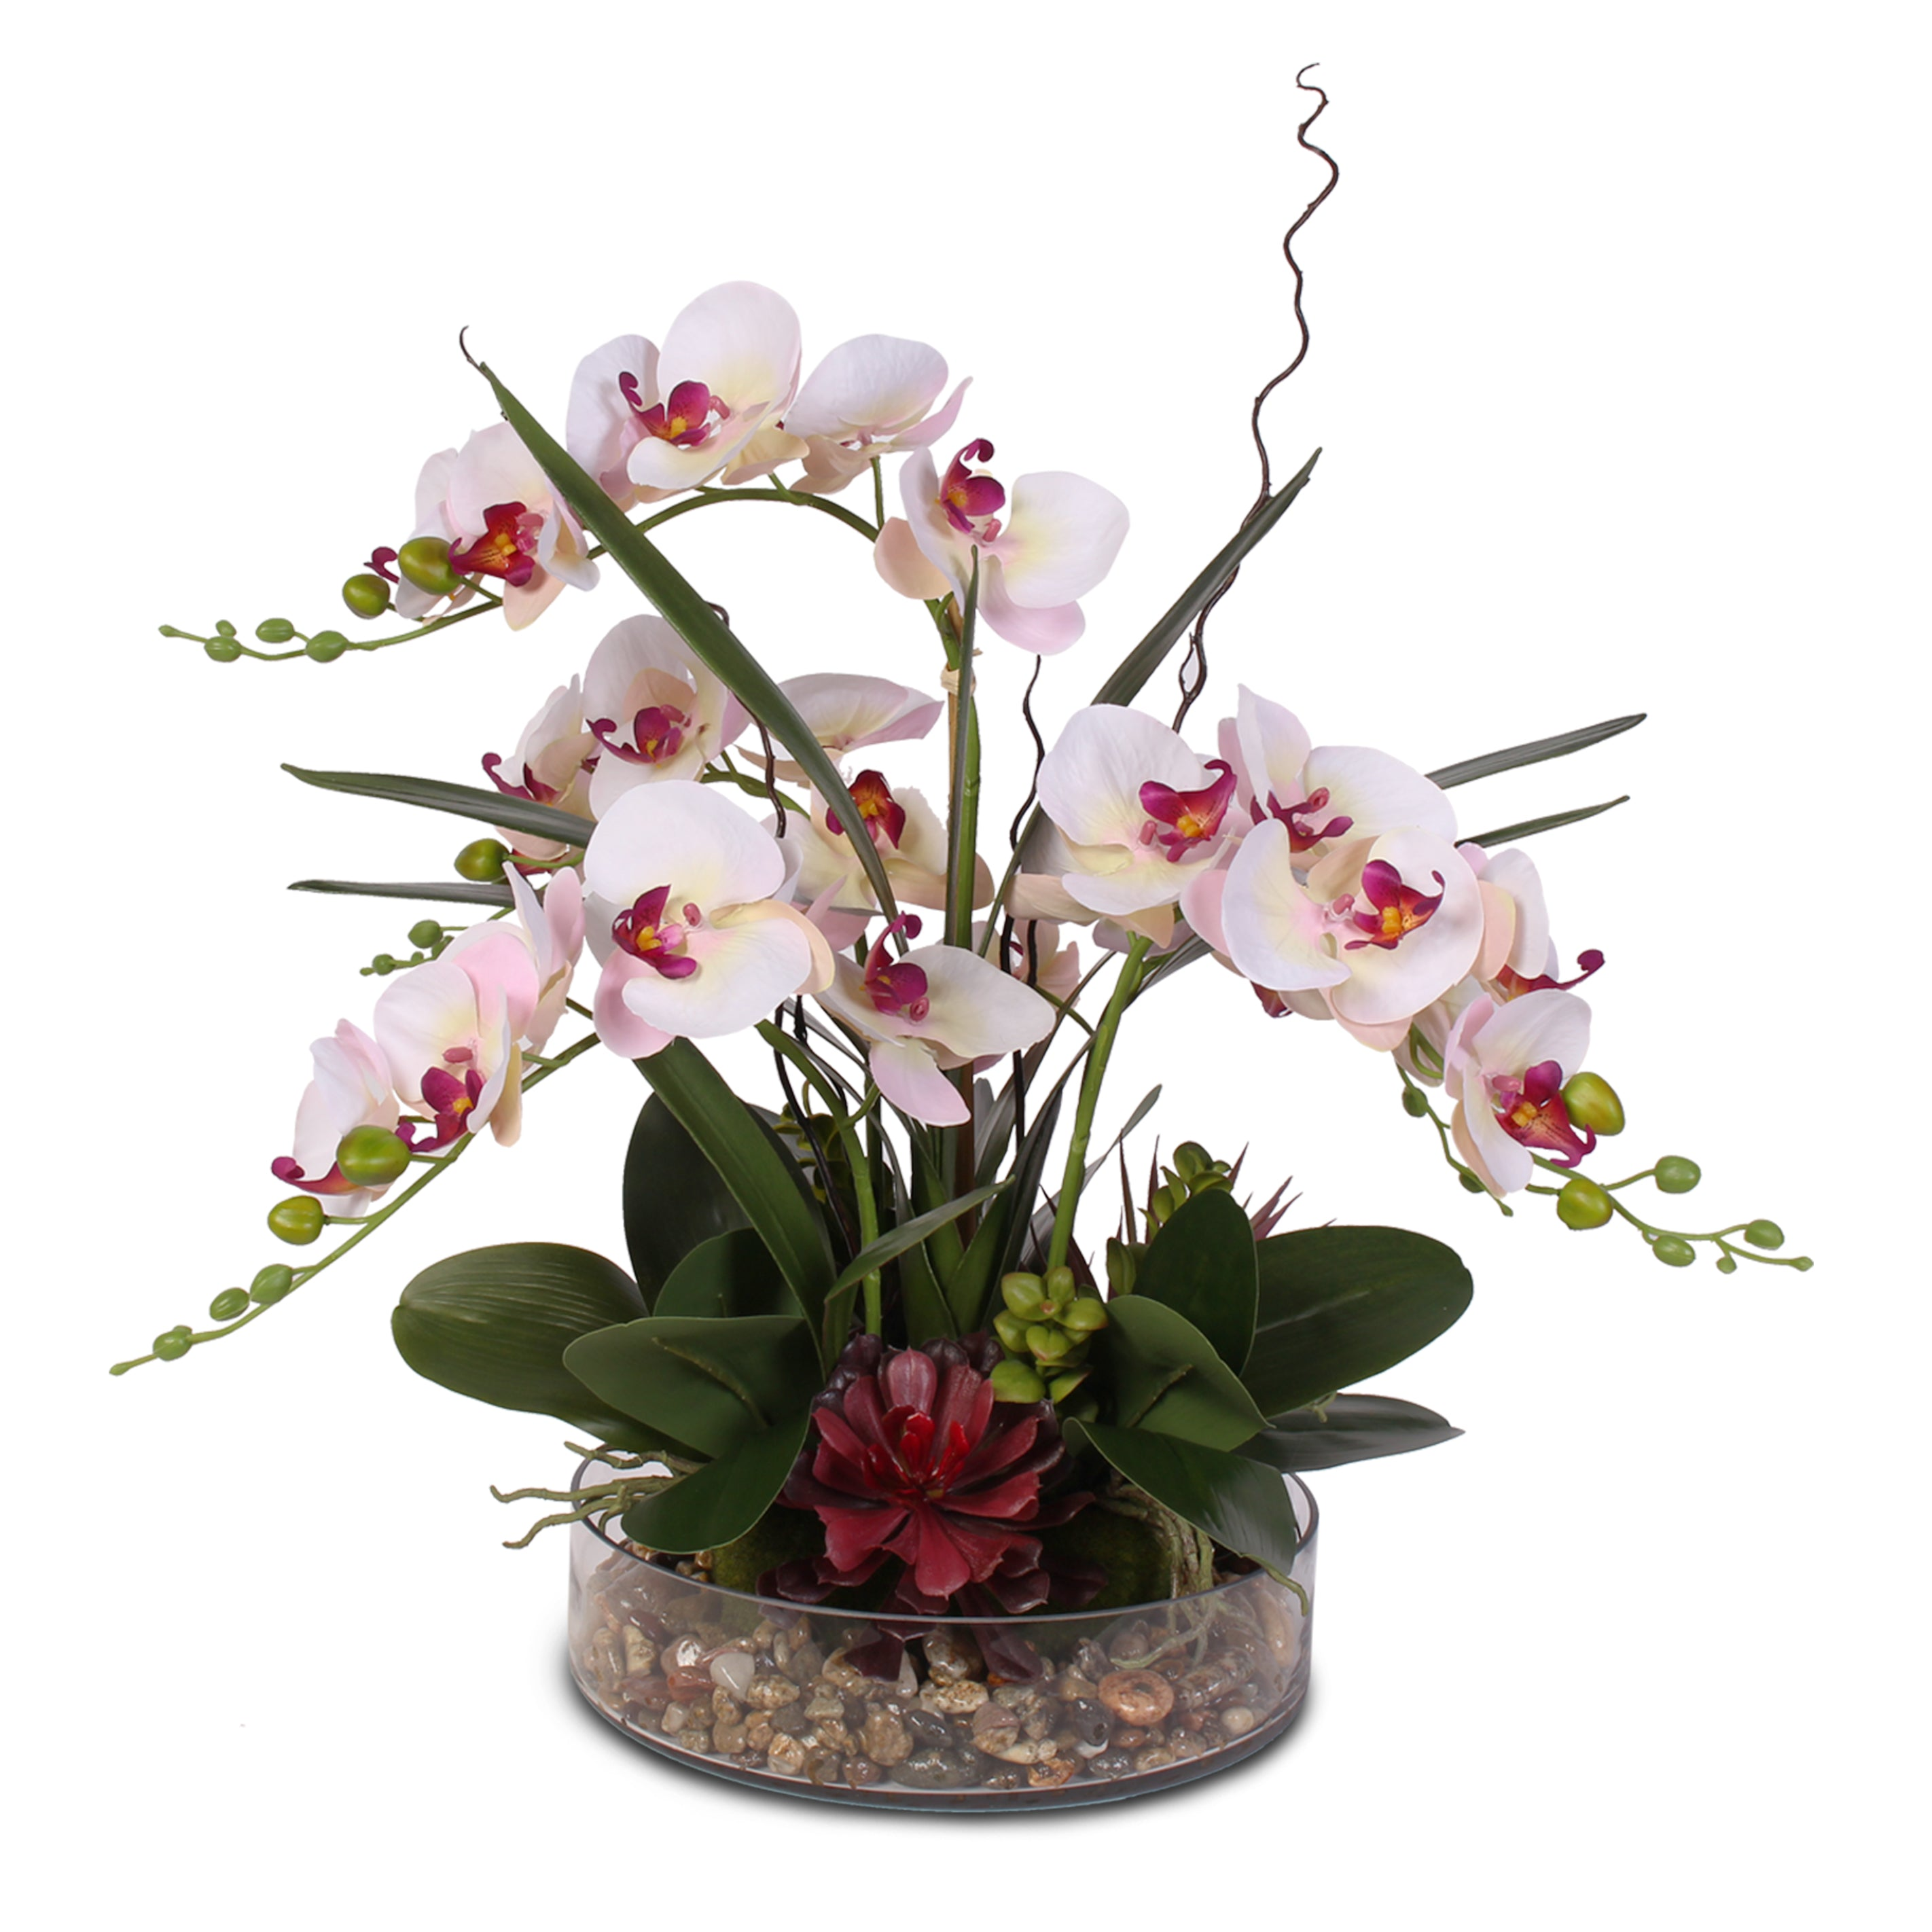 Jennysilks artificial flowers and plants jenny silks dainty pink cream silk phalaenopsis orchid artificial succulents arranged with natural pebbles in a glass reviewsmspy